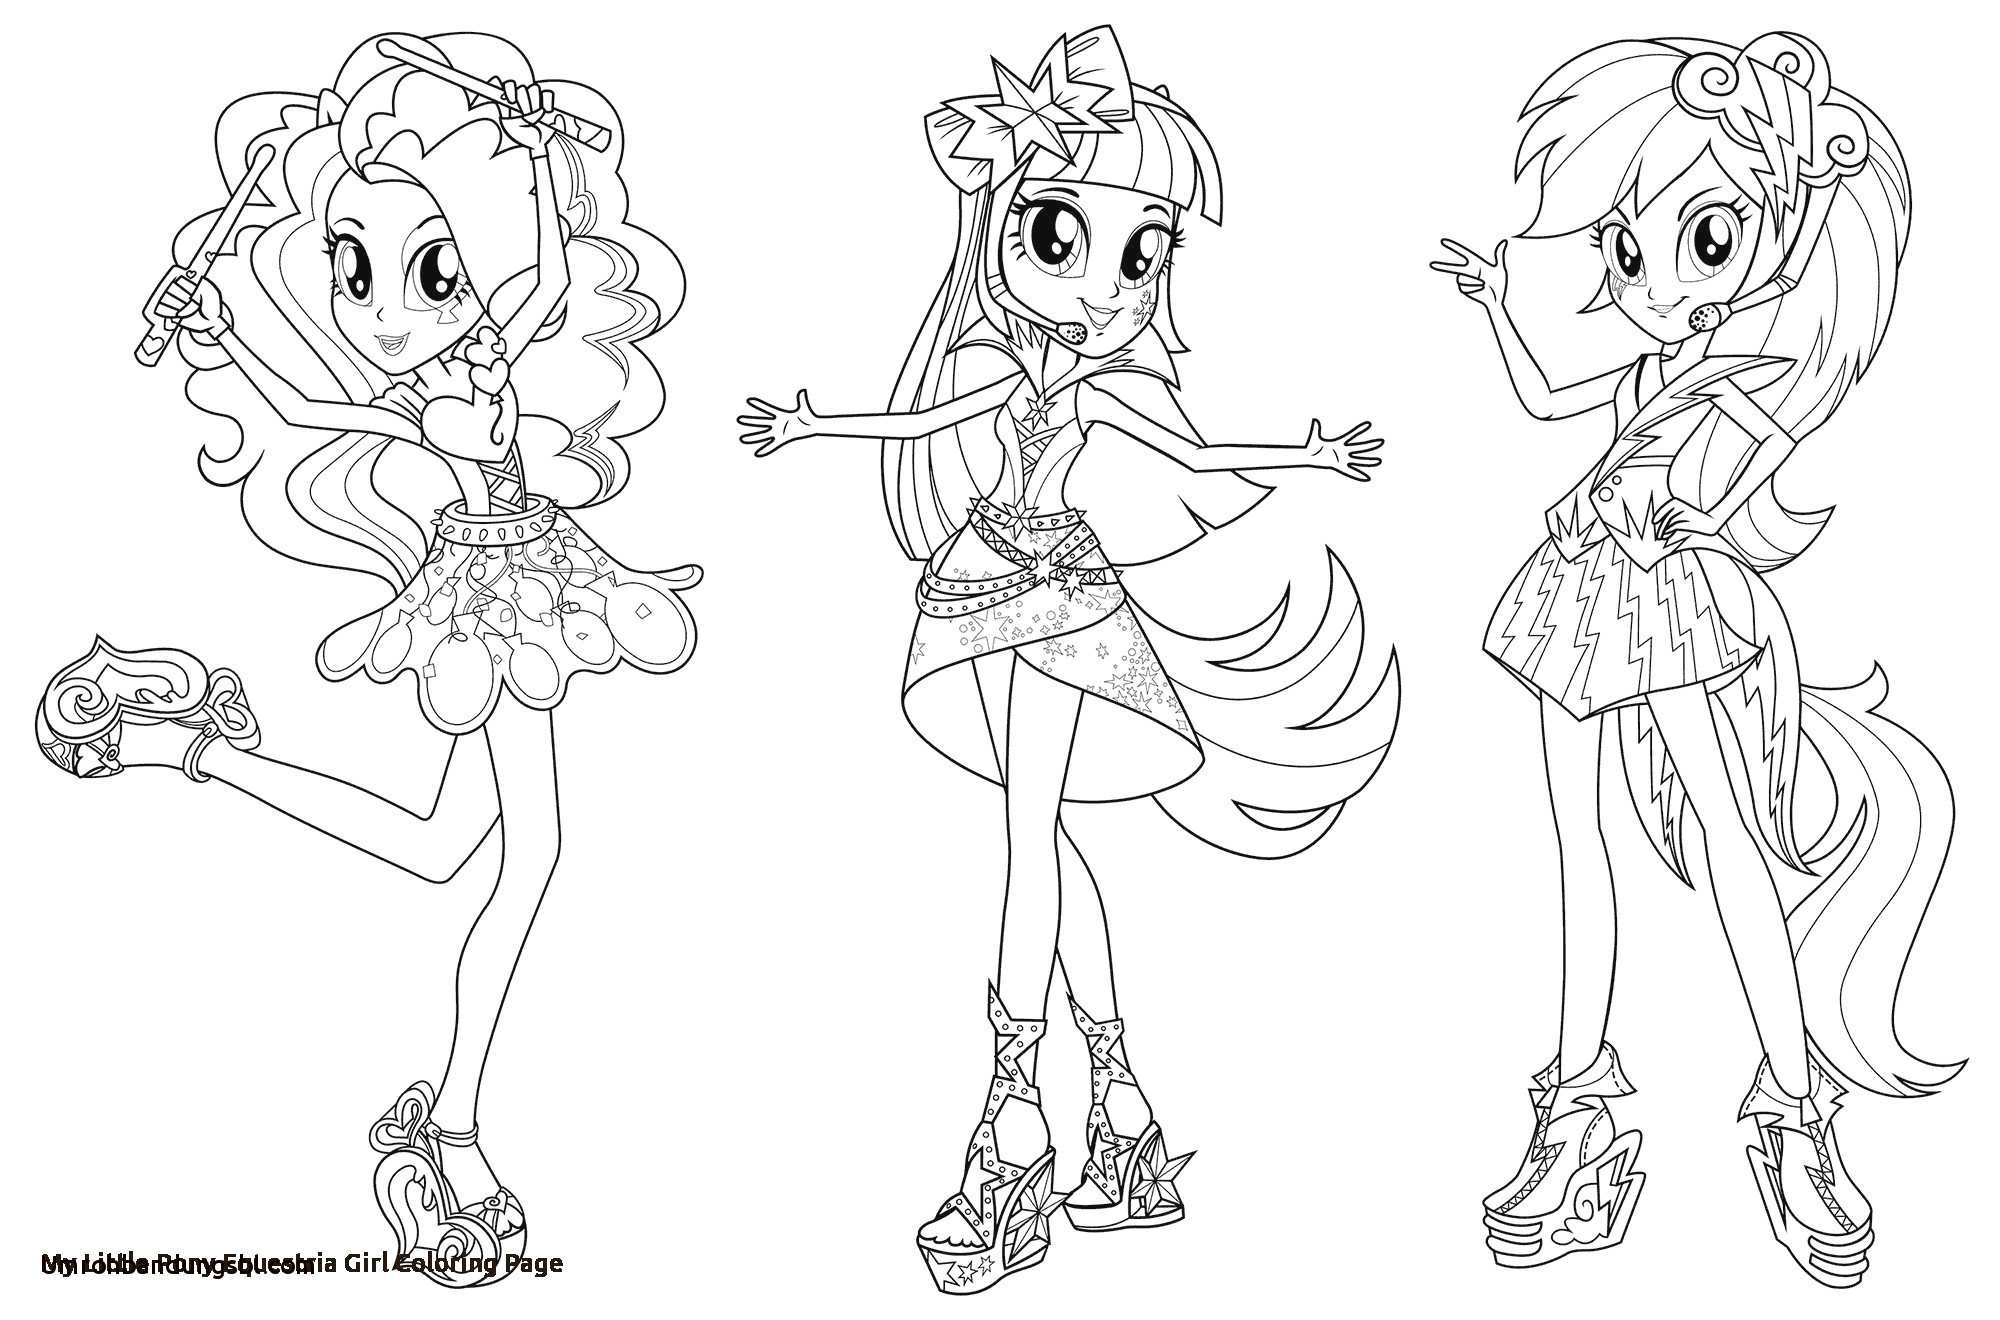 Ausmalbilder My Little Pony Equestria Girl Neu Coloring Pages Pinkie Pie Beautiful Pinkie Pie Coloring Pages to Galerie